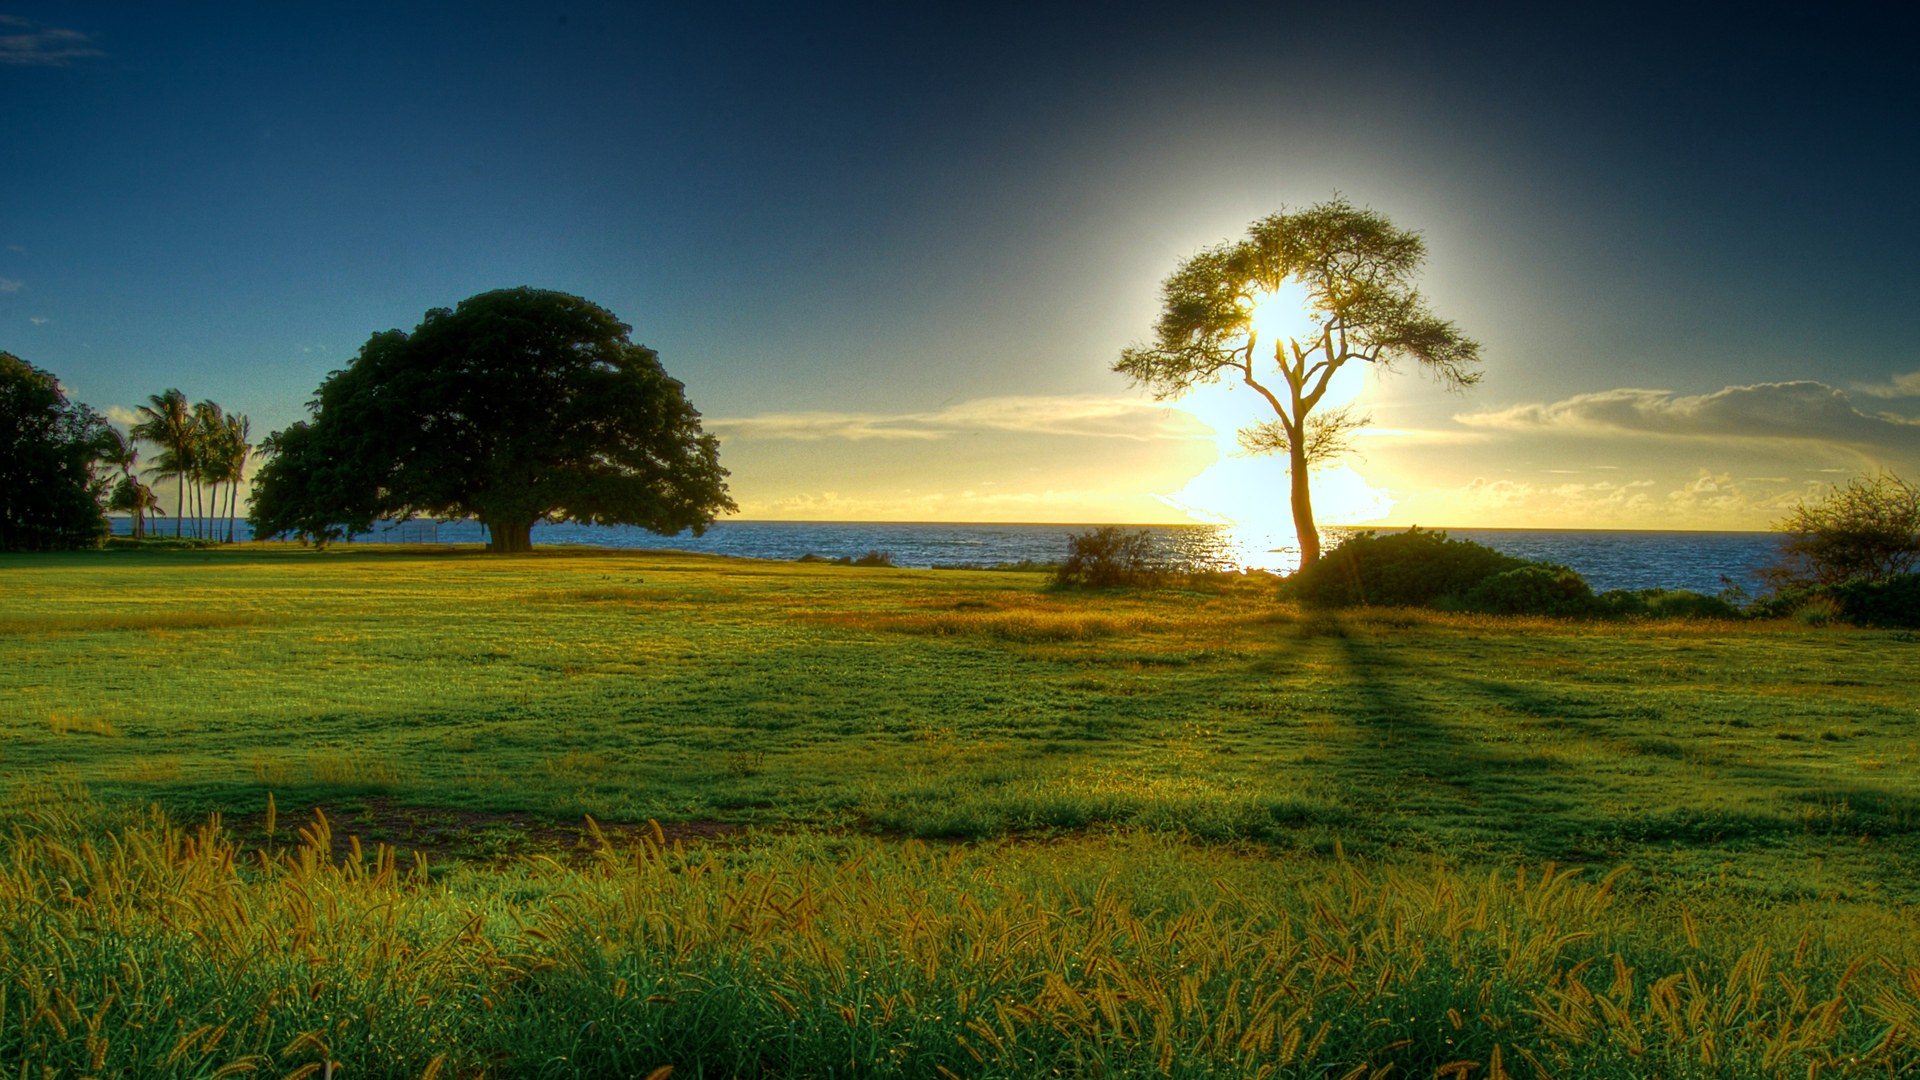 Beautiful Nature Wallpapers for Background HD Wallpaper 1920x1080